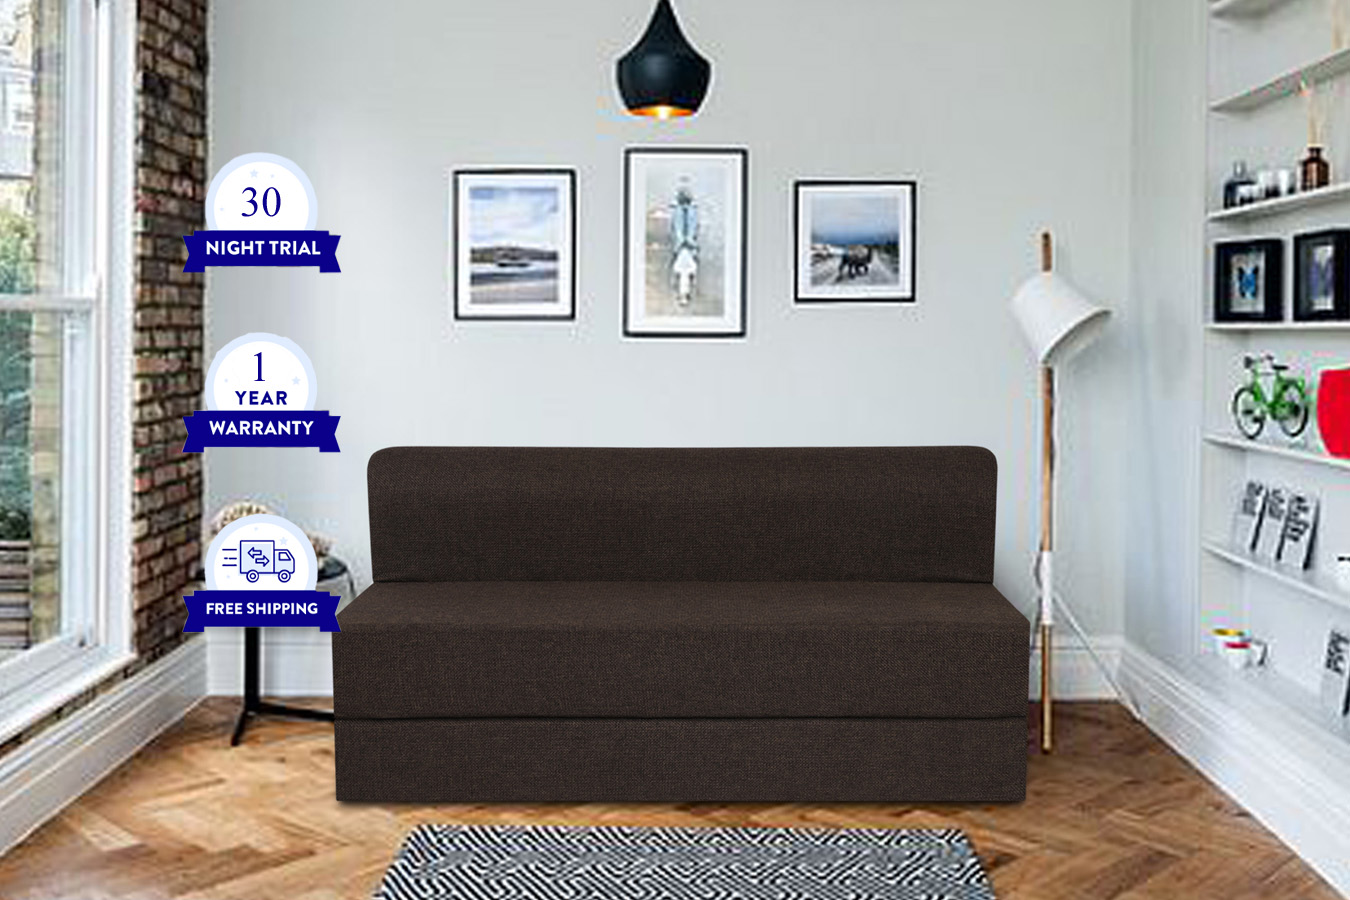 Buy sofa cum bed online with Soft Foam and Fabric